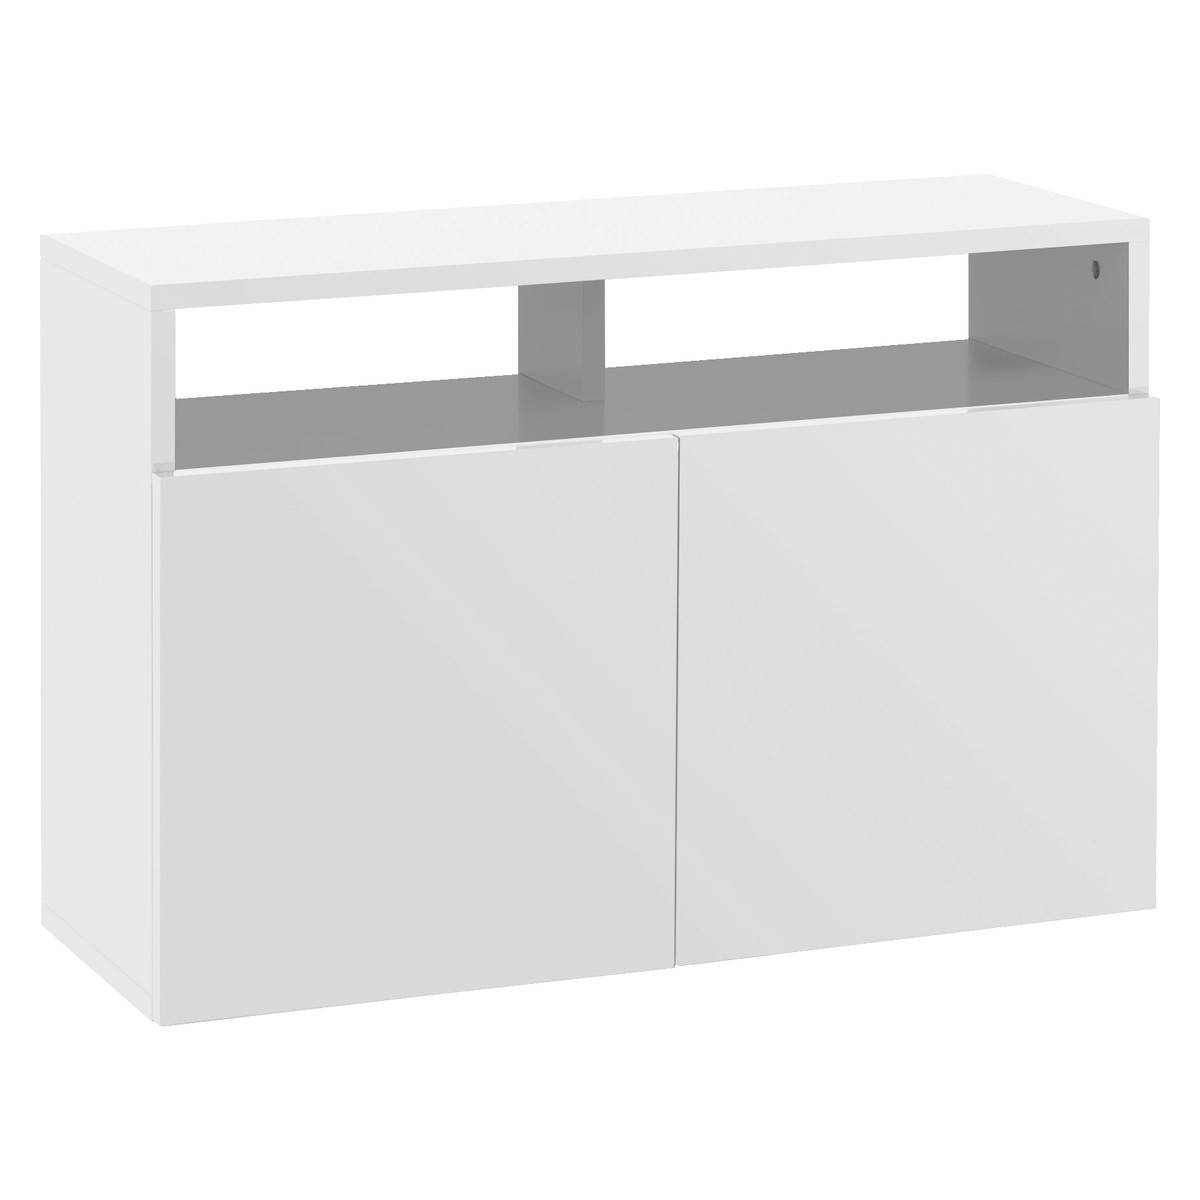 Kubrik White High Gloss Small Sideboard | Buy Now At Habitat Uk with White Sideboards for Sale (Image 6 of 30)